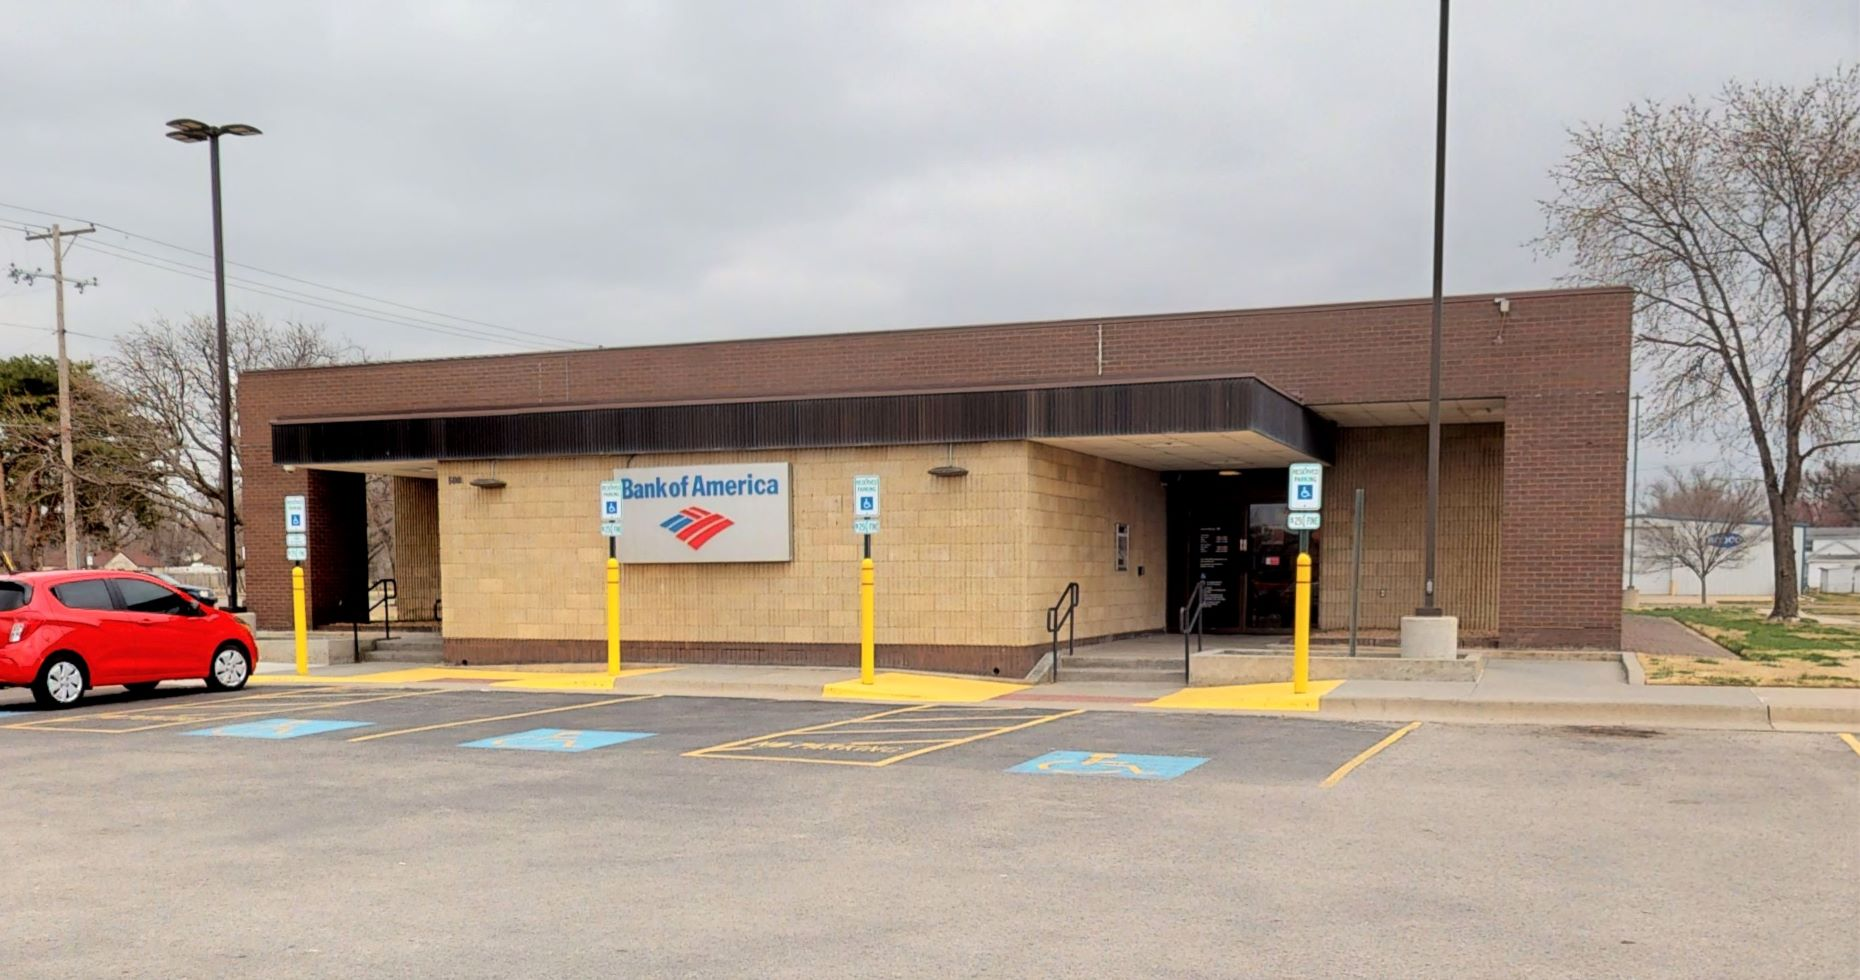 Bank of America financial center with drive-thru ATM   500 S West St, Wichita, KS 67213